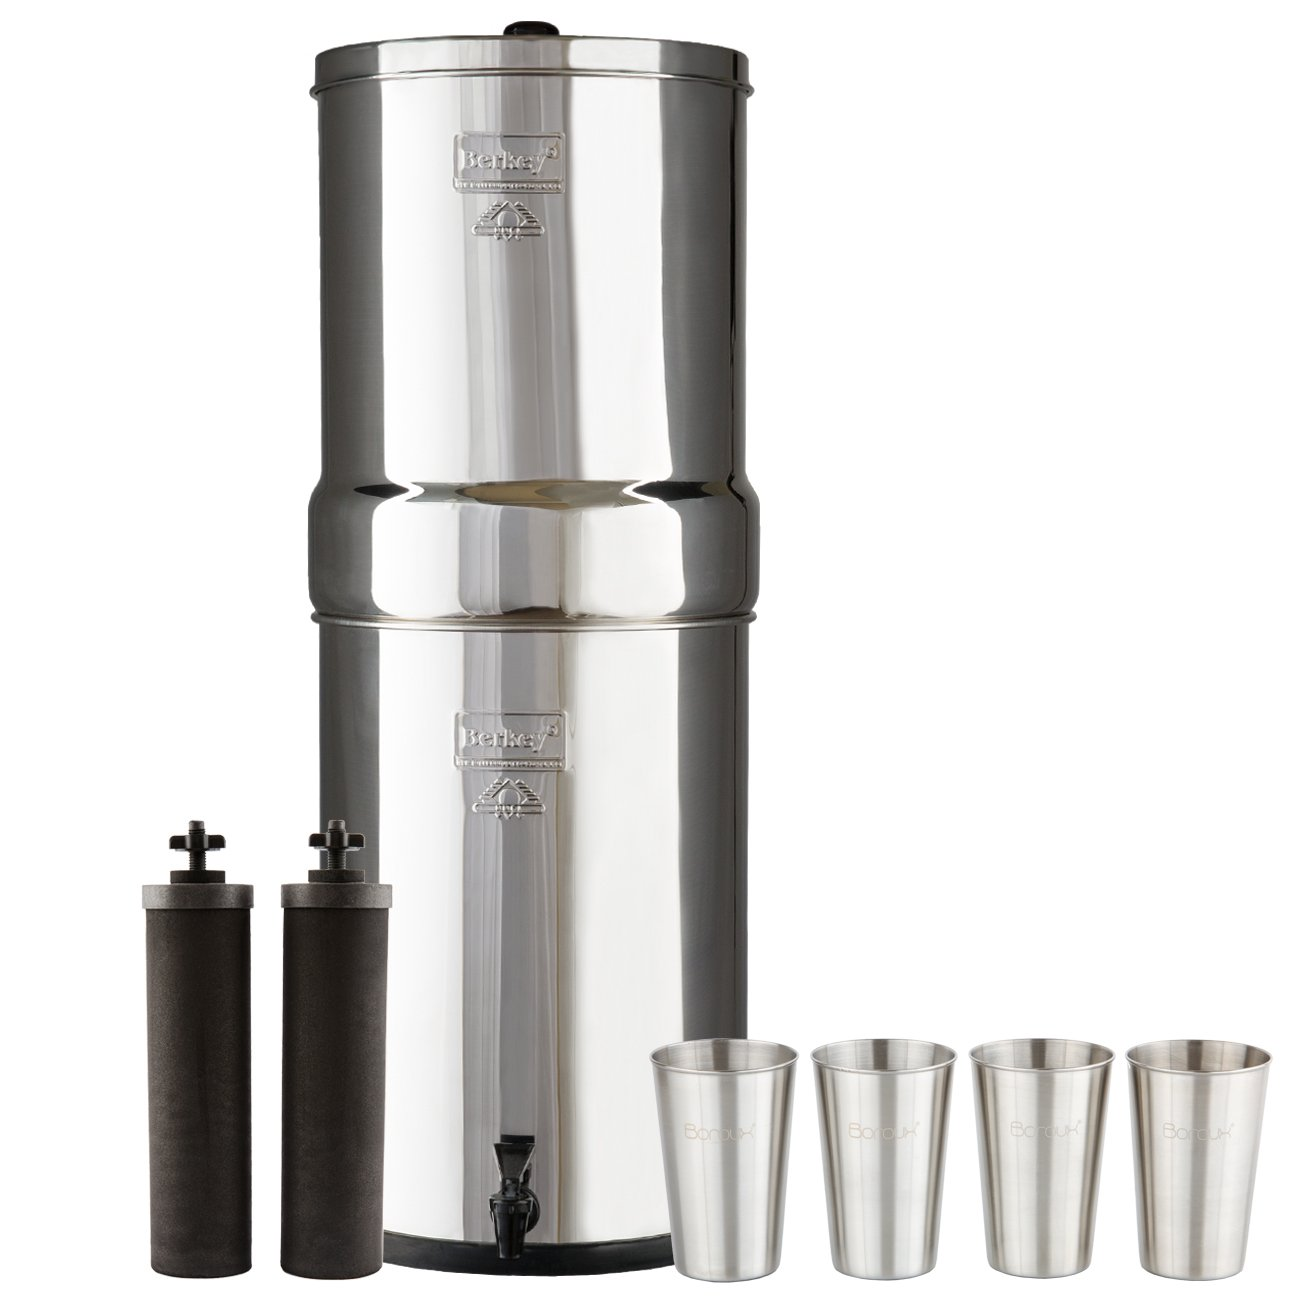 Crown Berkey Water Filter System with 2 Black Purifier Filters (6 Gallons) Bundled with 1-set of 4 Boroux 12 oz Stainless Steel Cups for drinking the best tasting water